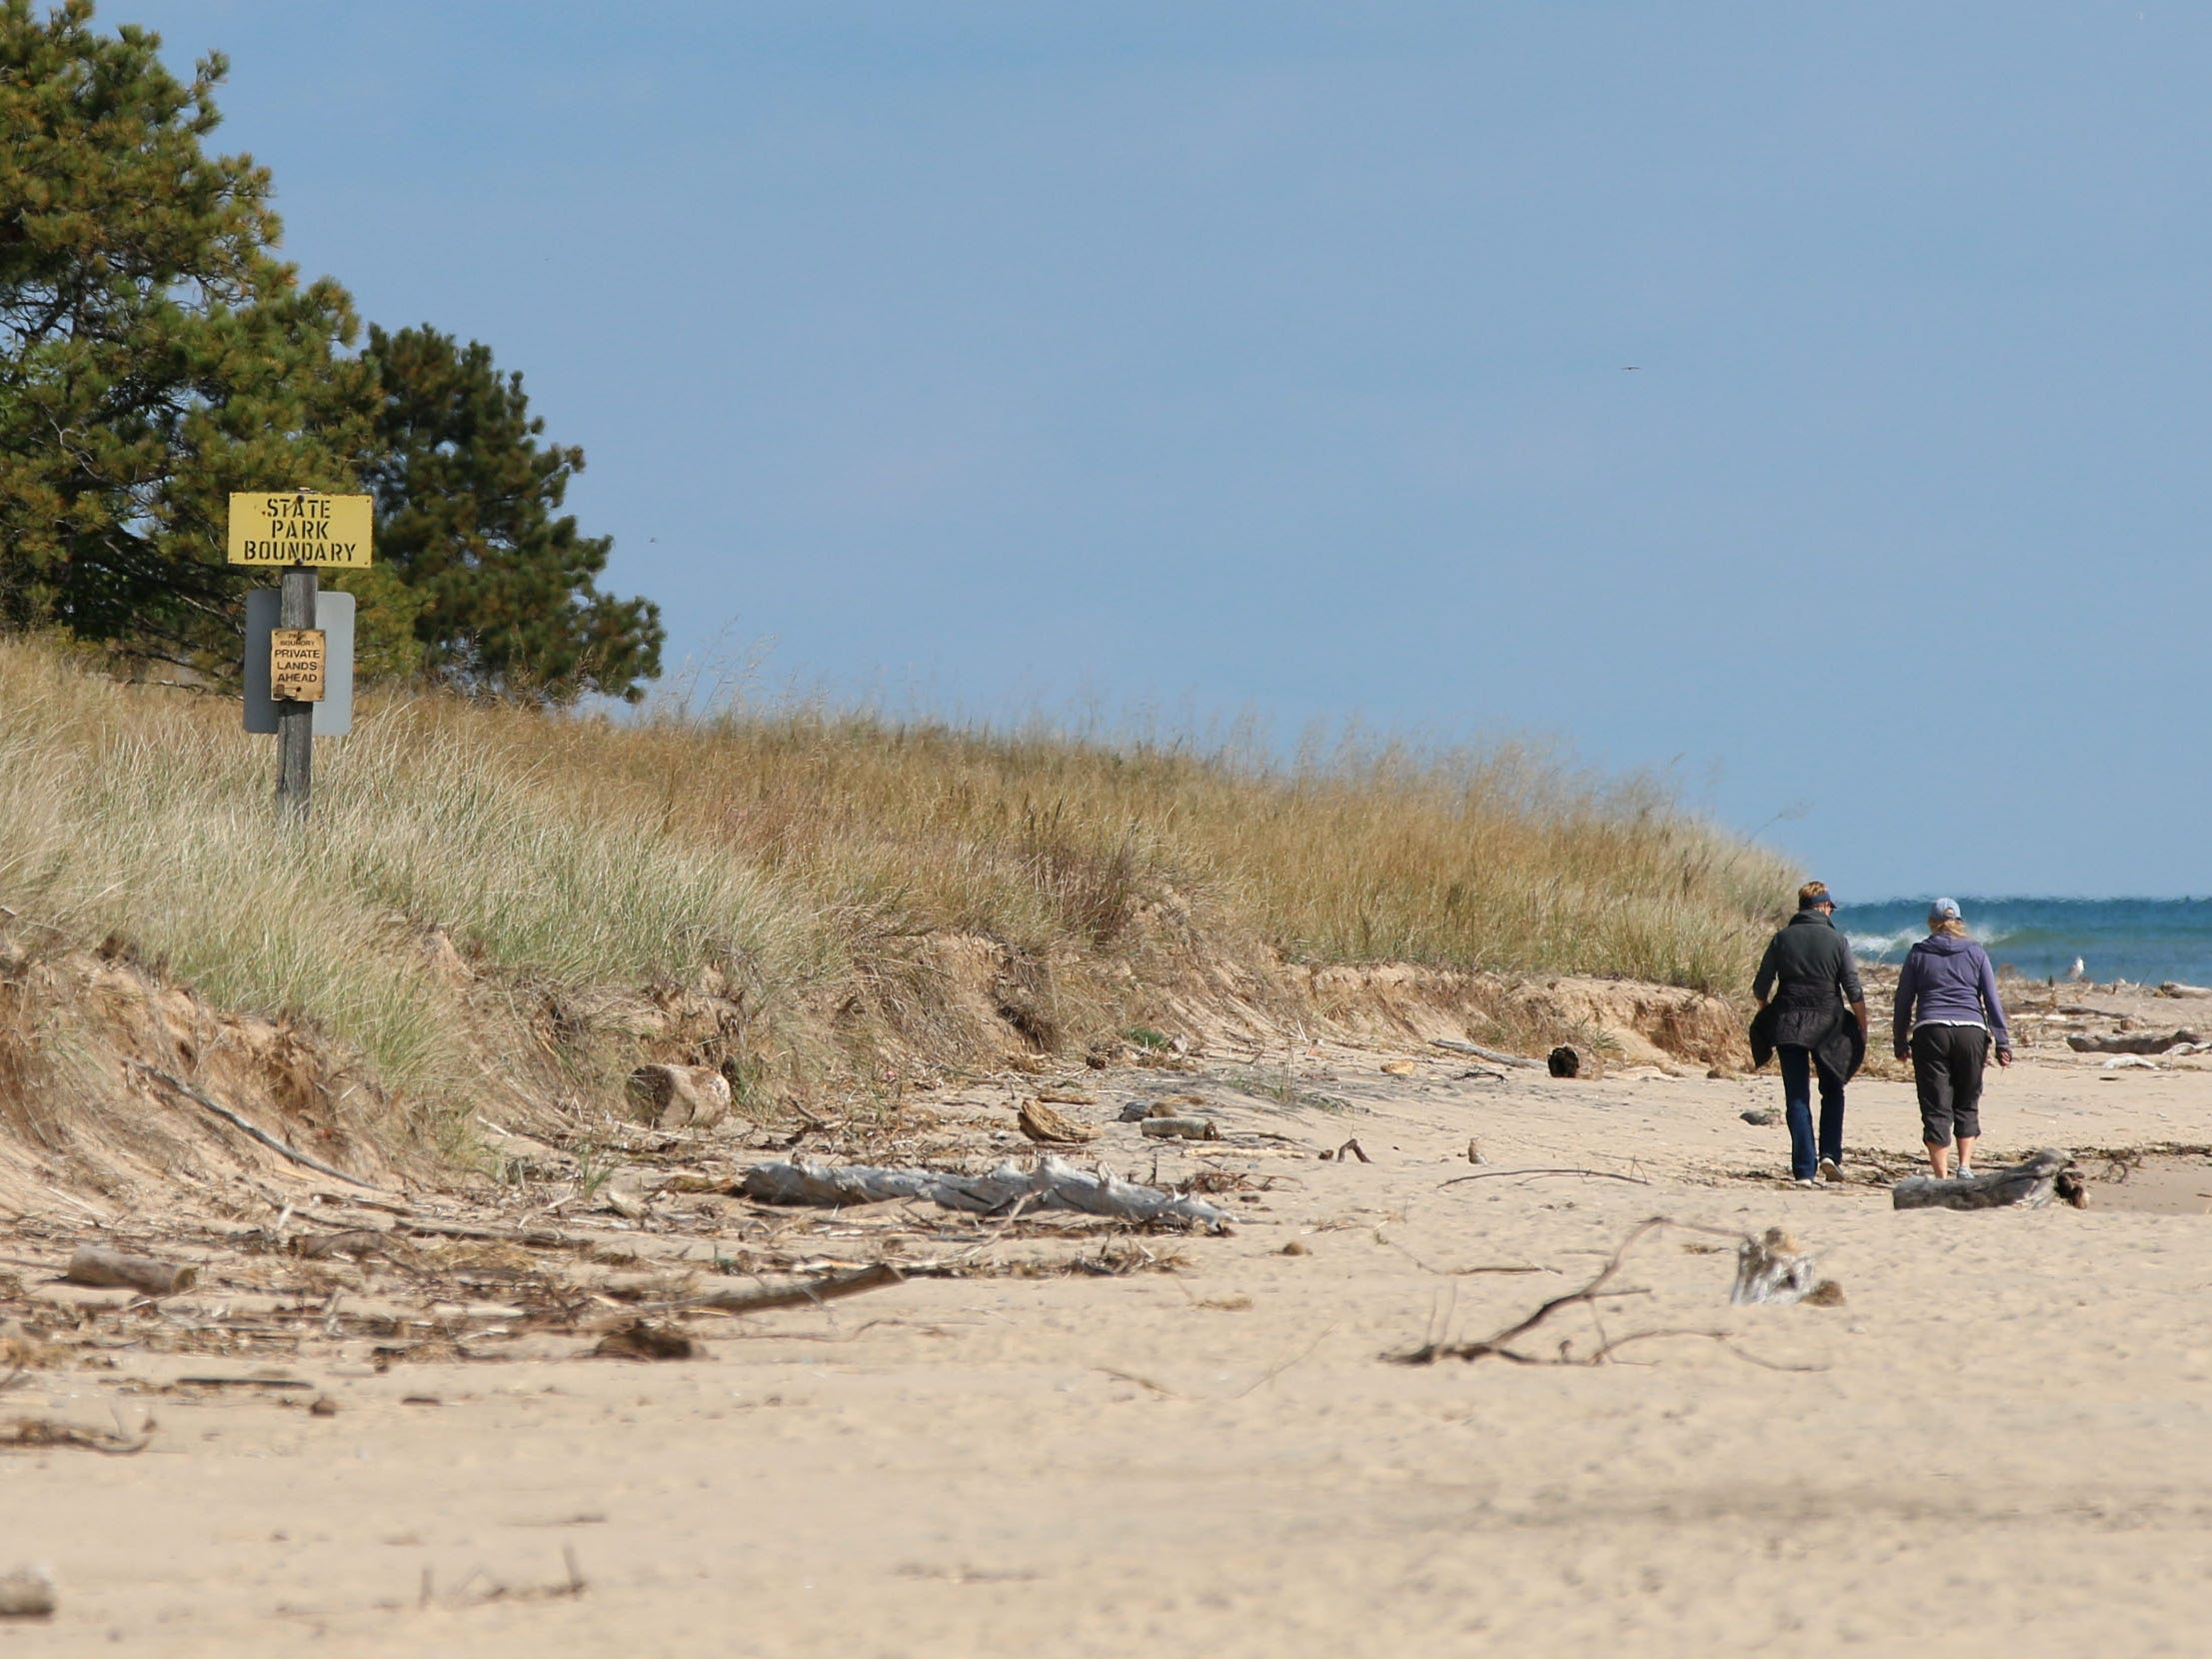 A couple walks by the Kohler-Andrae State Park and Kohler Company property line, Wednesday September 26, 2018, in Sheboygan, Wis.